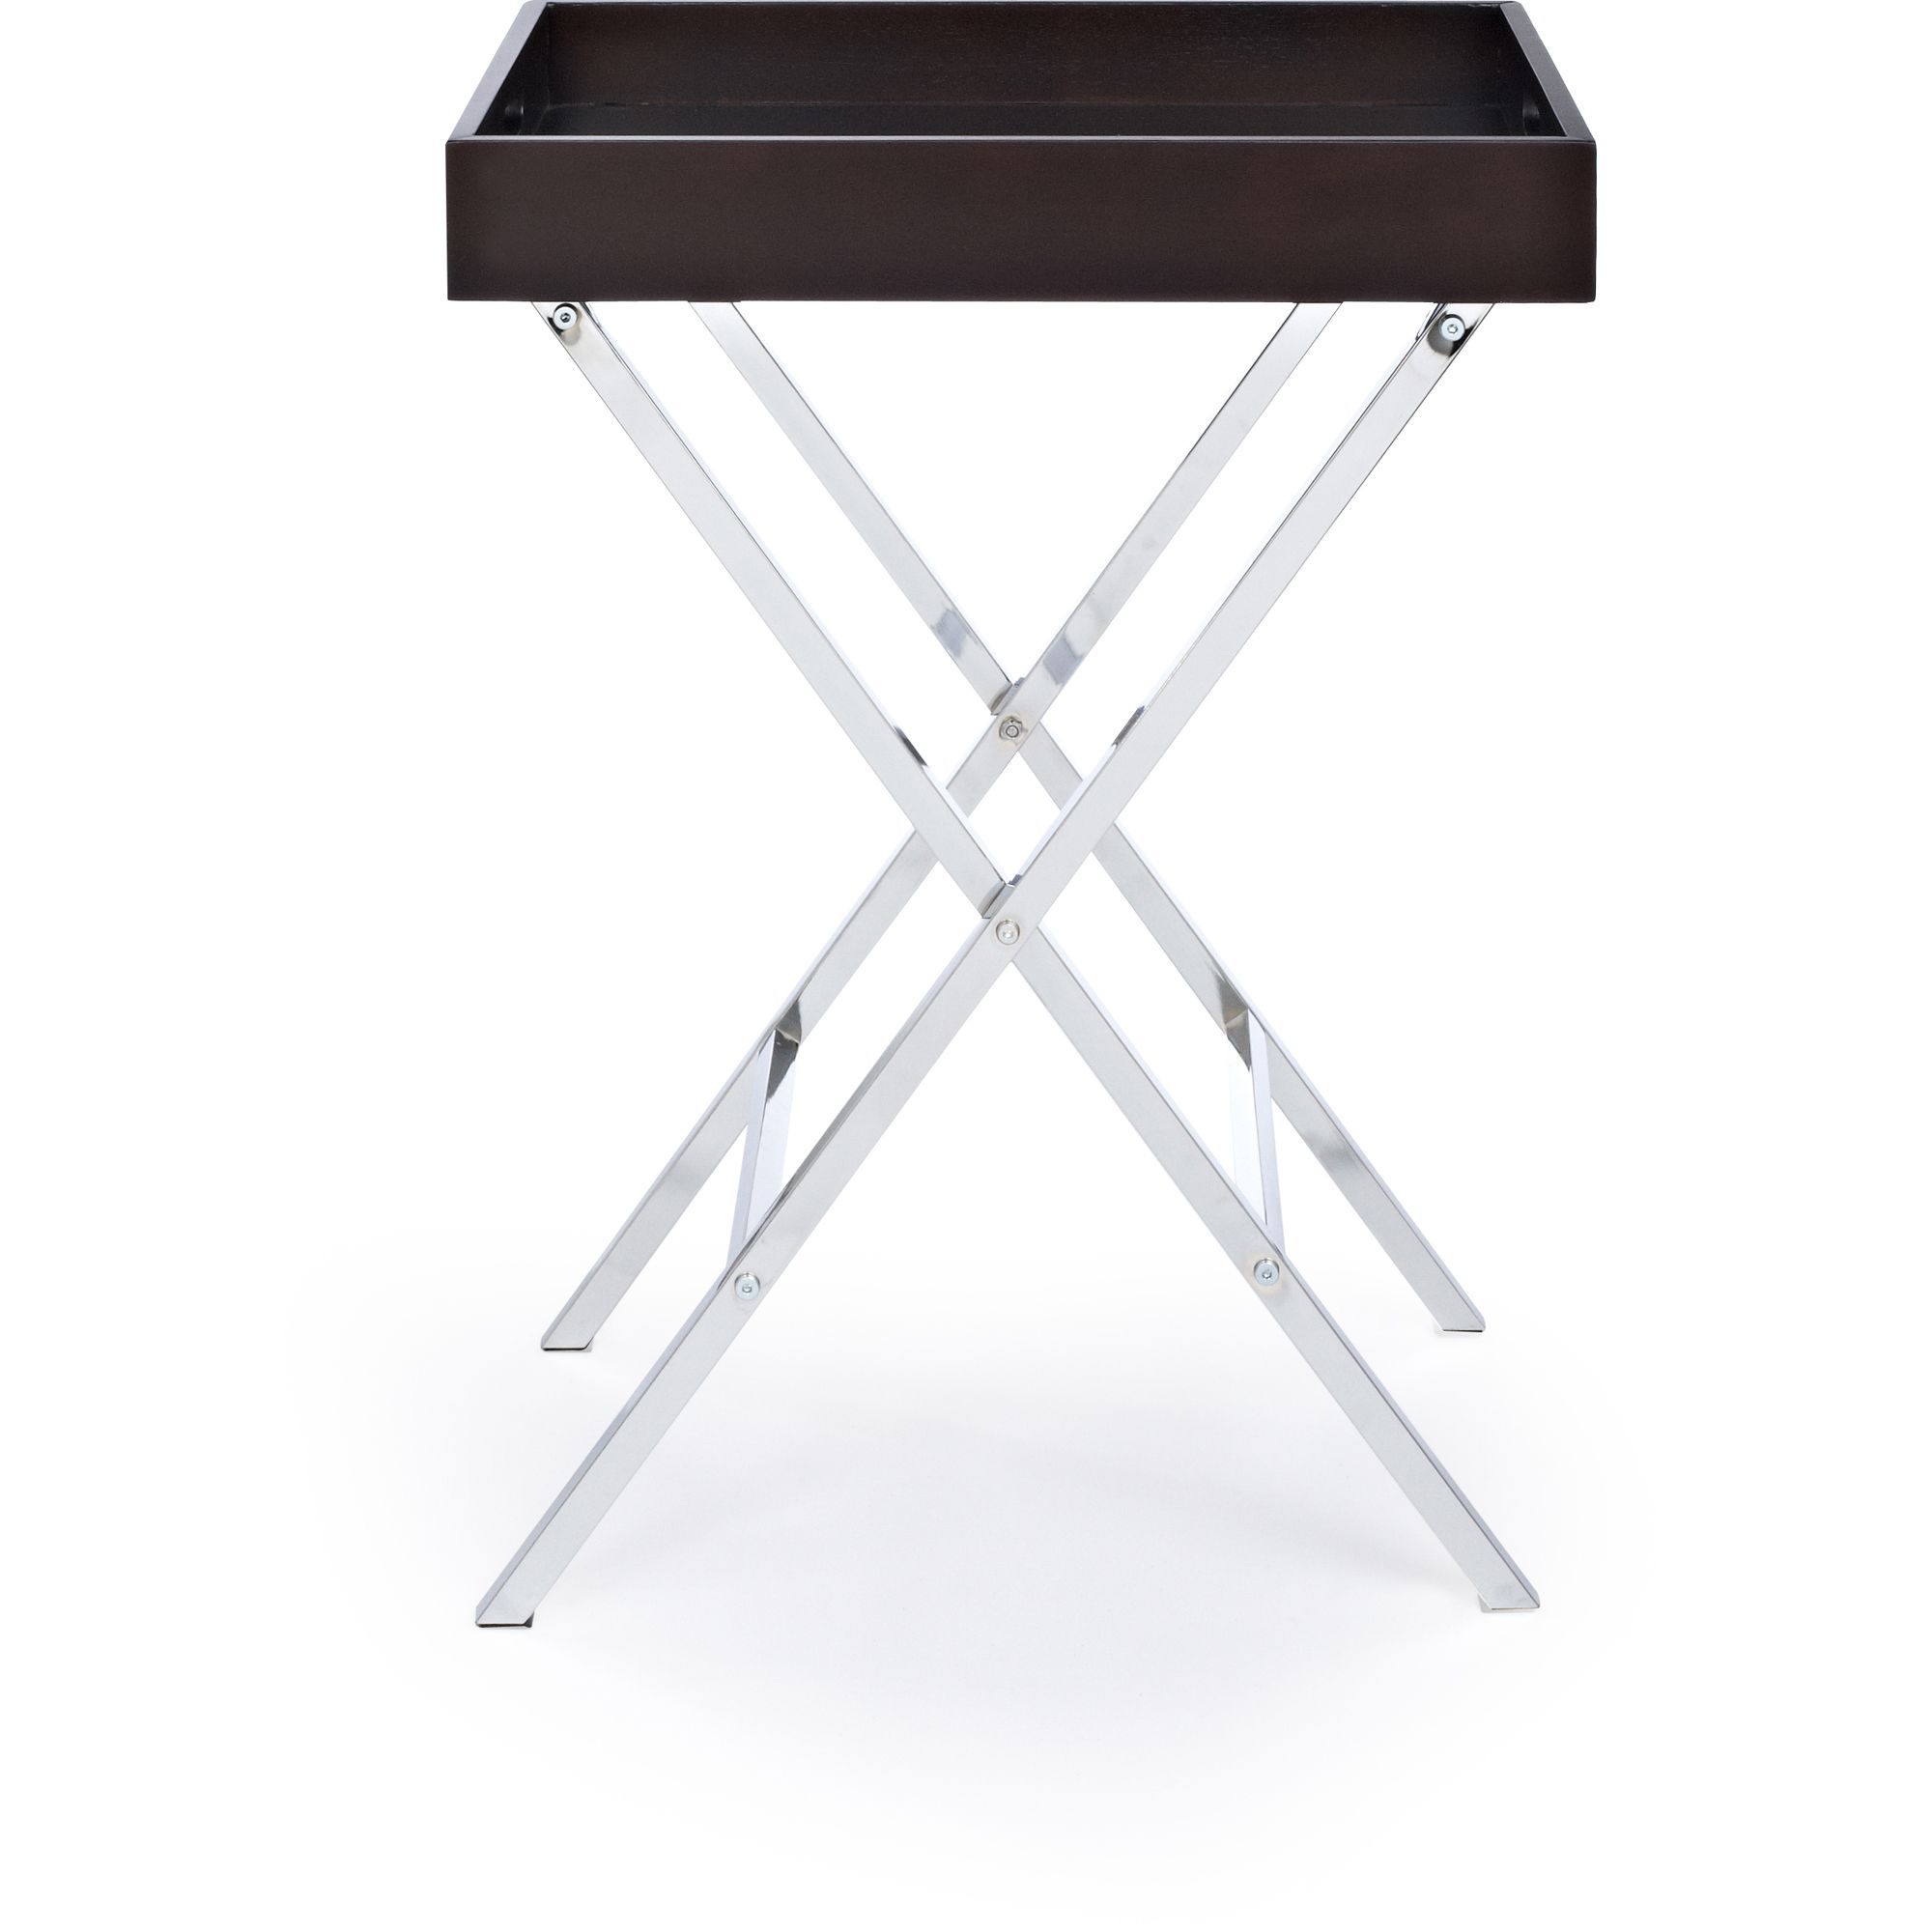 Home Trends Folding Tray Table Espresso/Chrome Finish at